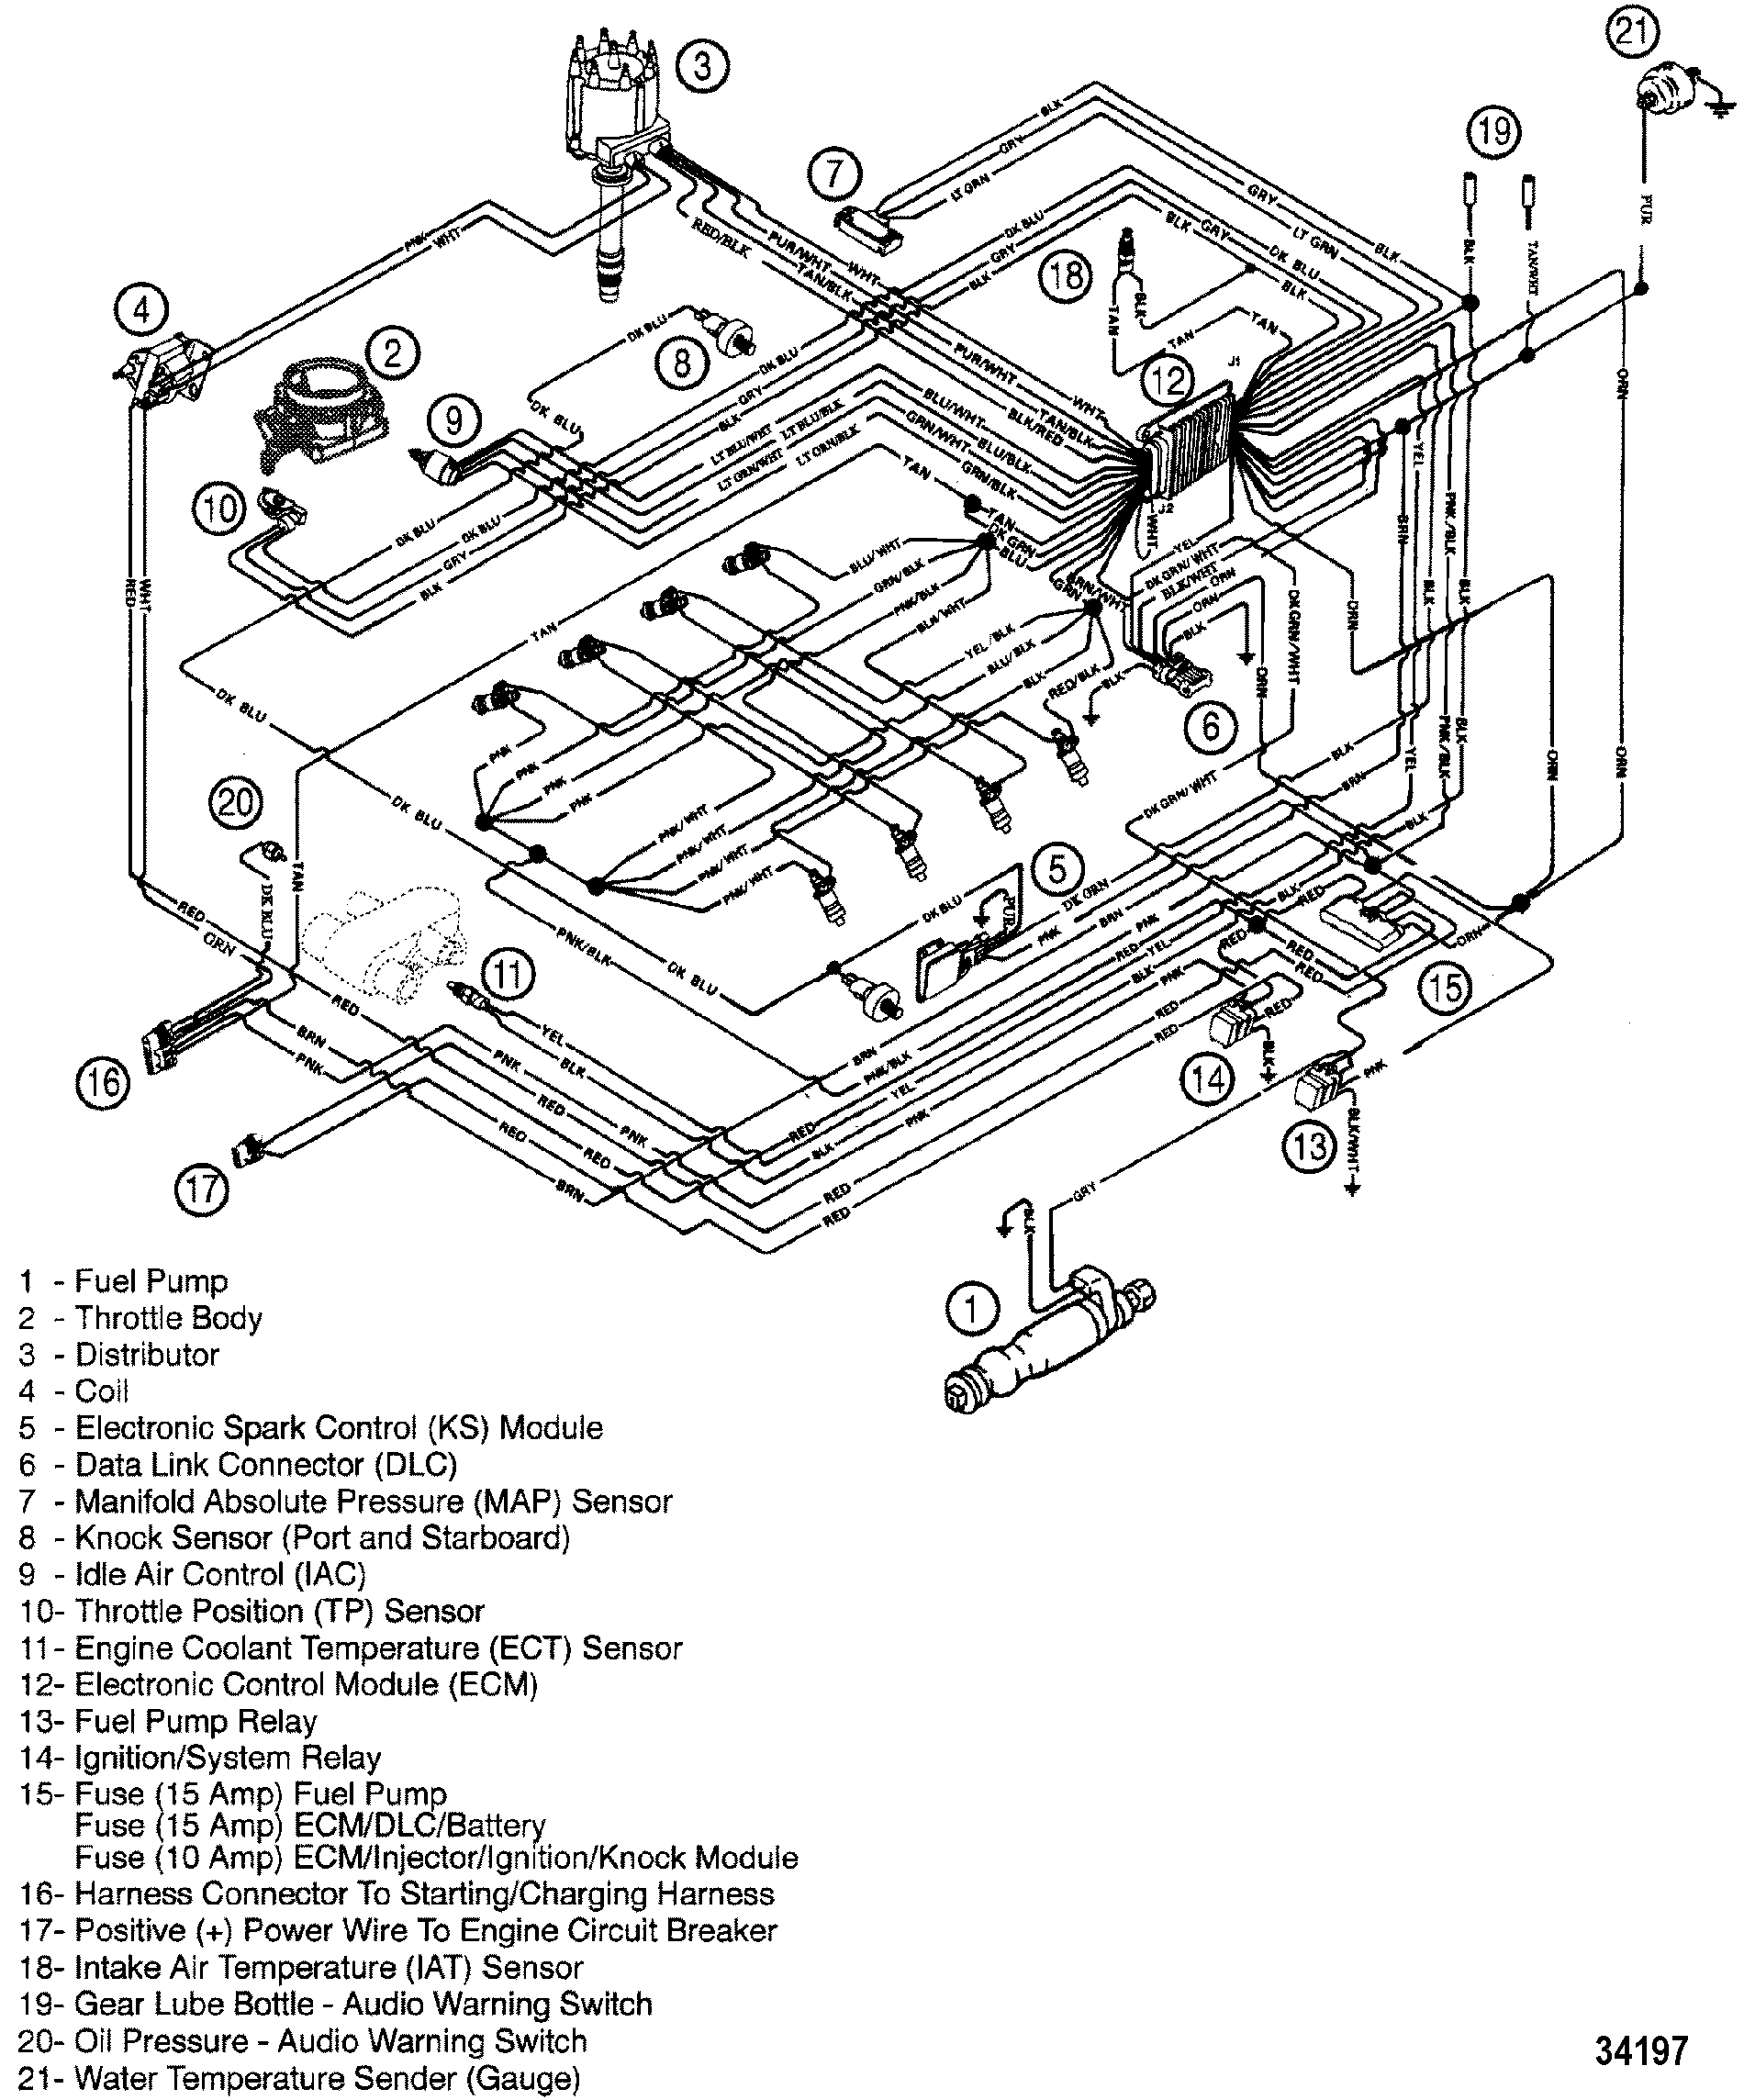 34197 cp performance wiring harness (efi) Wiring Harness Diagram at bakdesigns.co